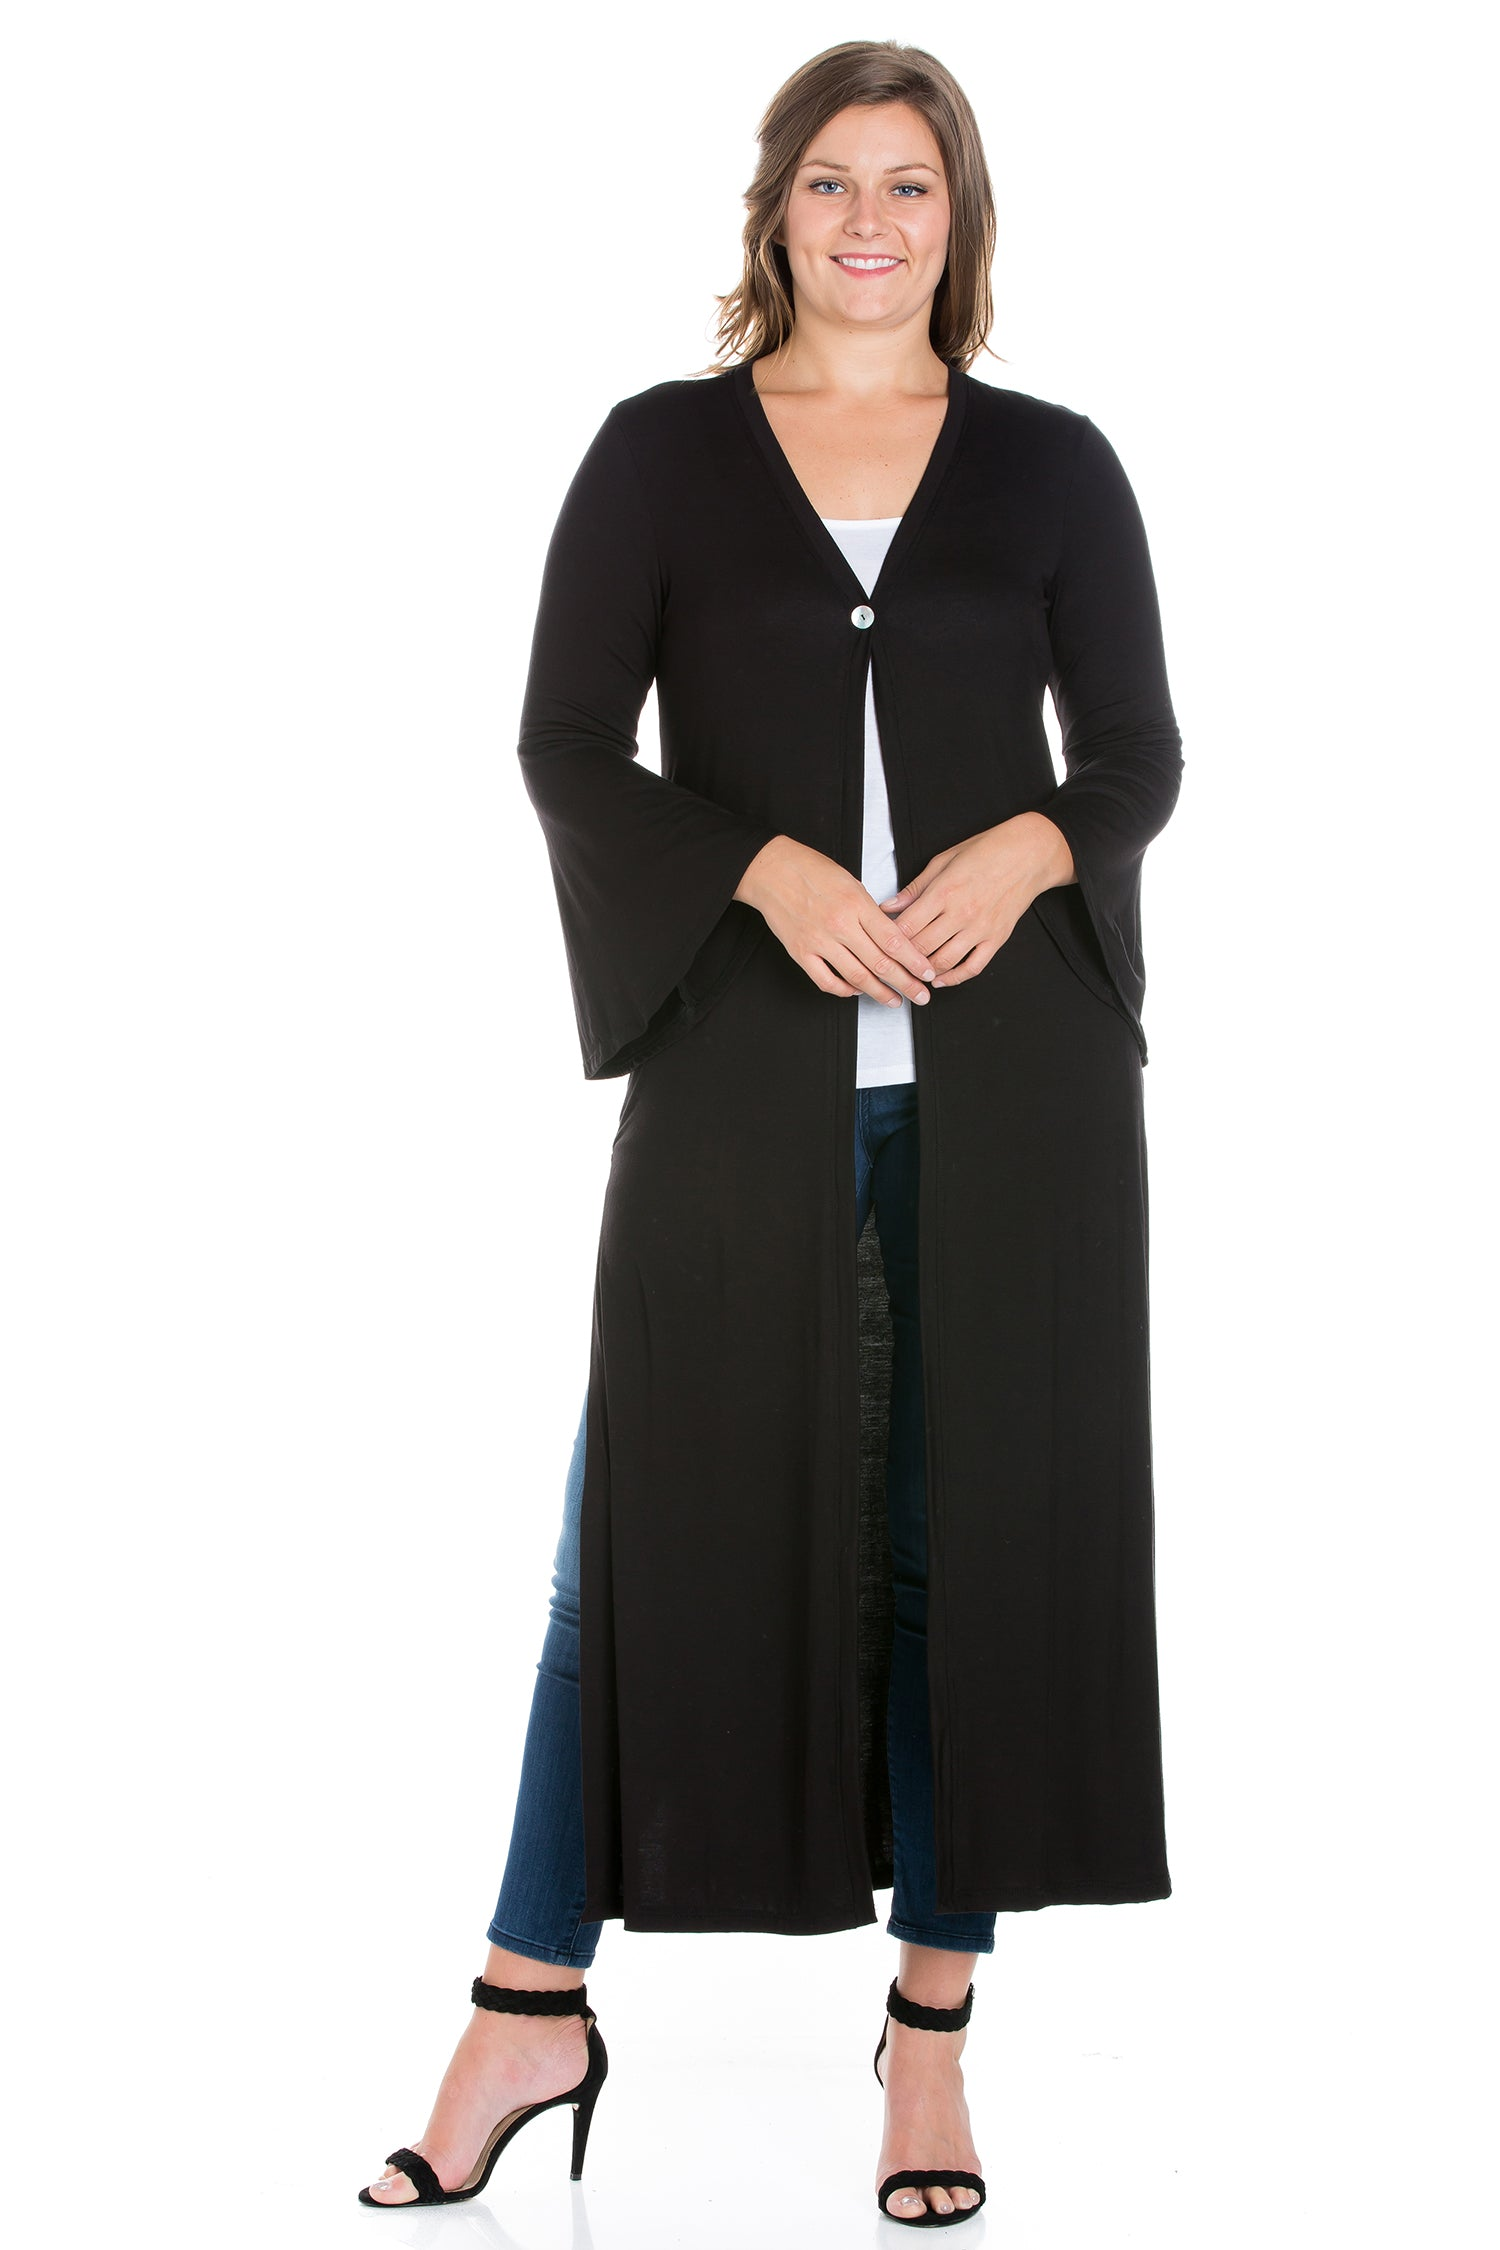 24seven Comfort Apparel Bell Sleeve Maxi Length Plus Size Cardigan Duster-SHRUGS-24Seven Comfort Apparel-BLACK-1X-24/7 Comfort Apparel